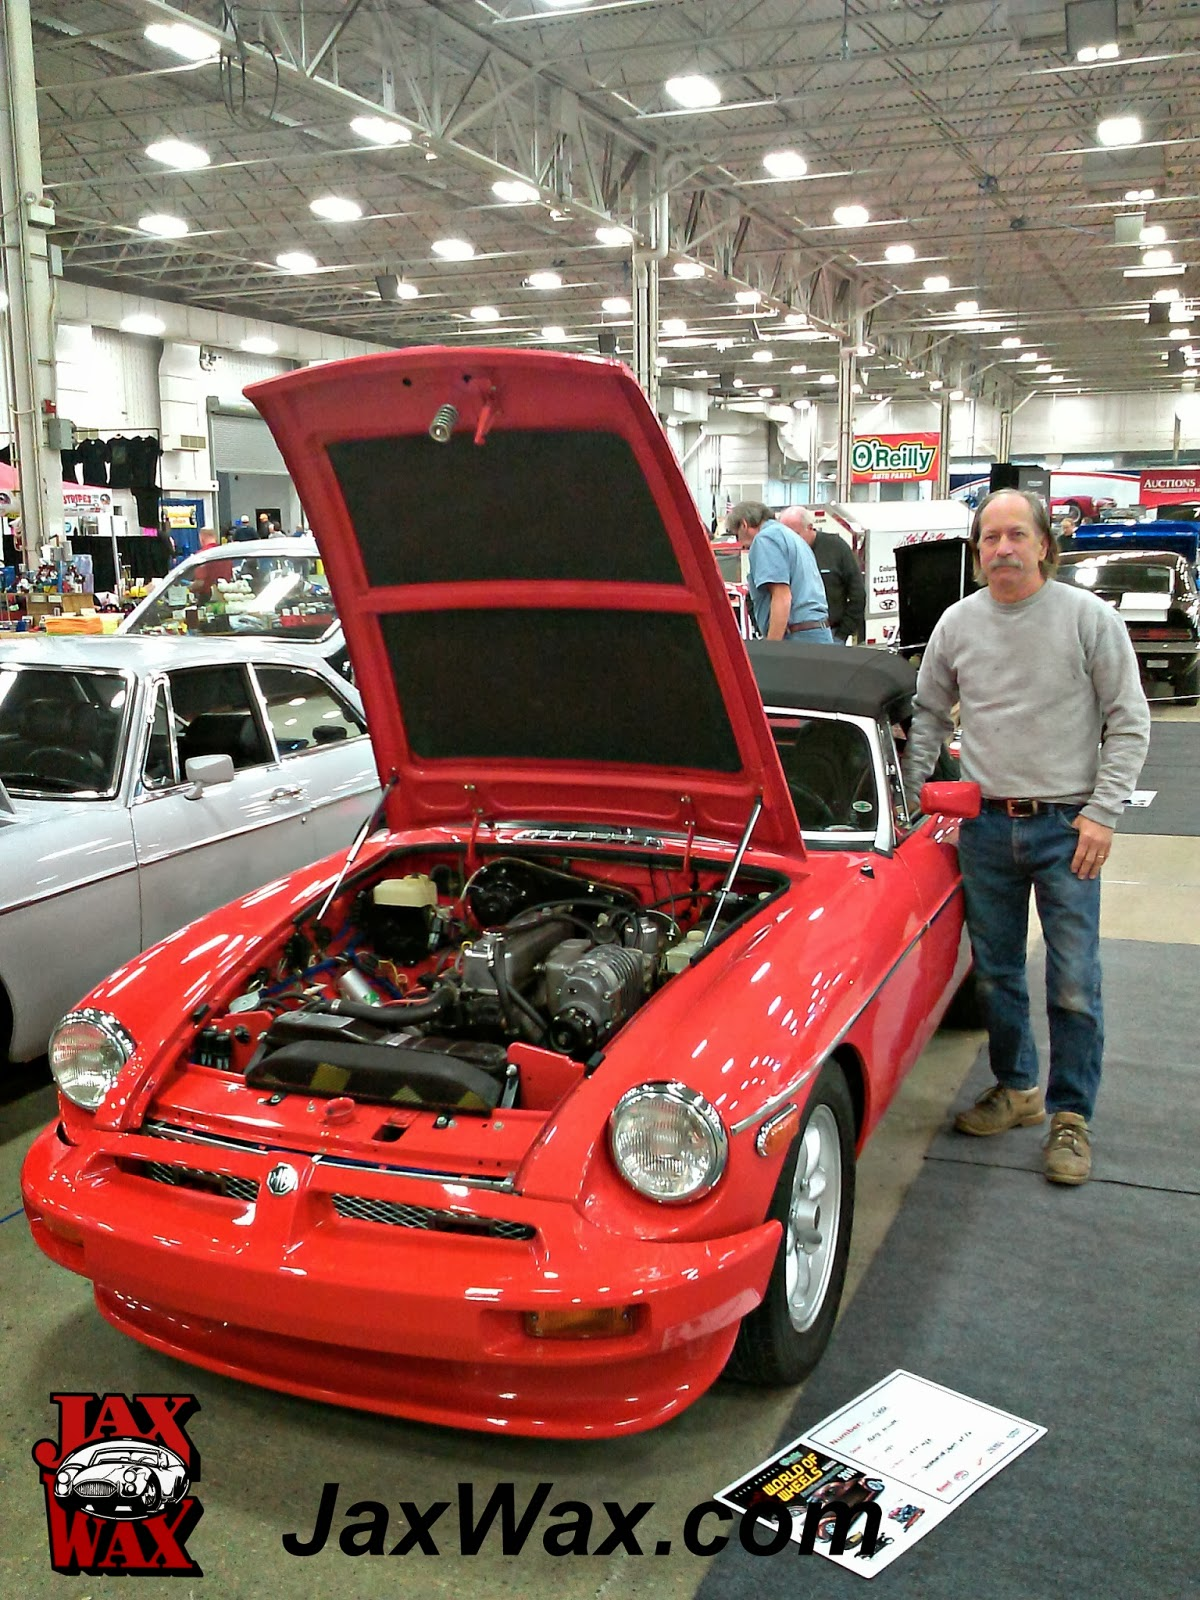 1977 MGB Indianapolis World of Wheels Jax Wax Customer